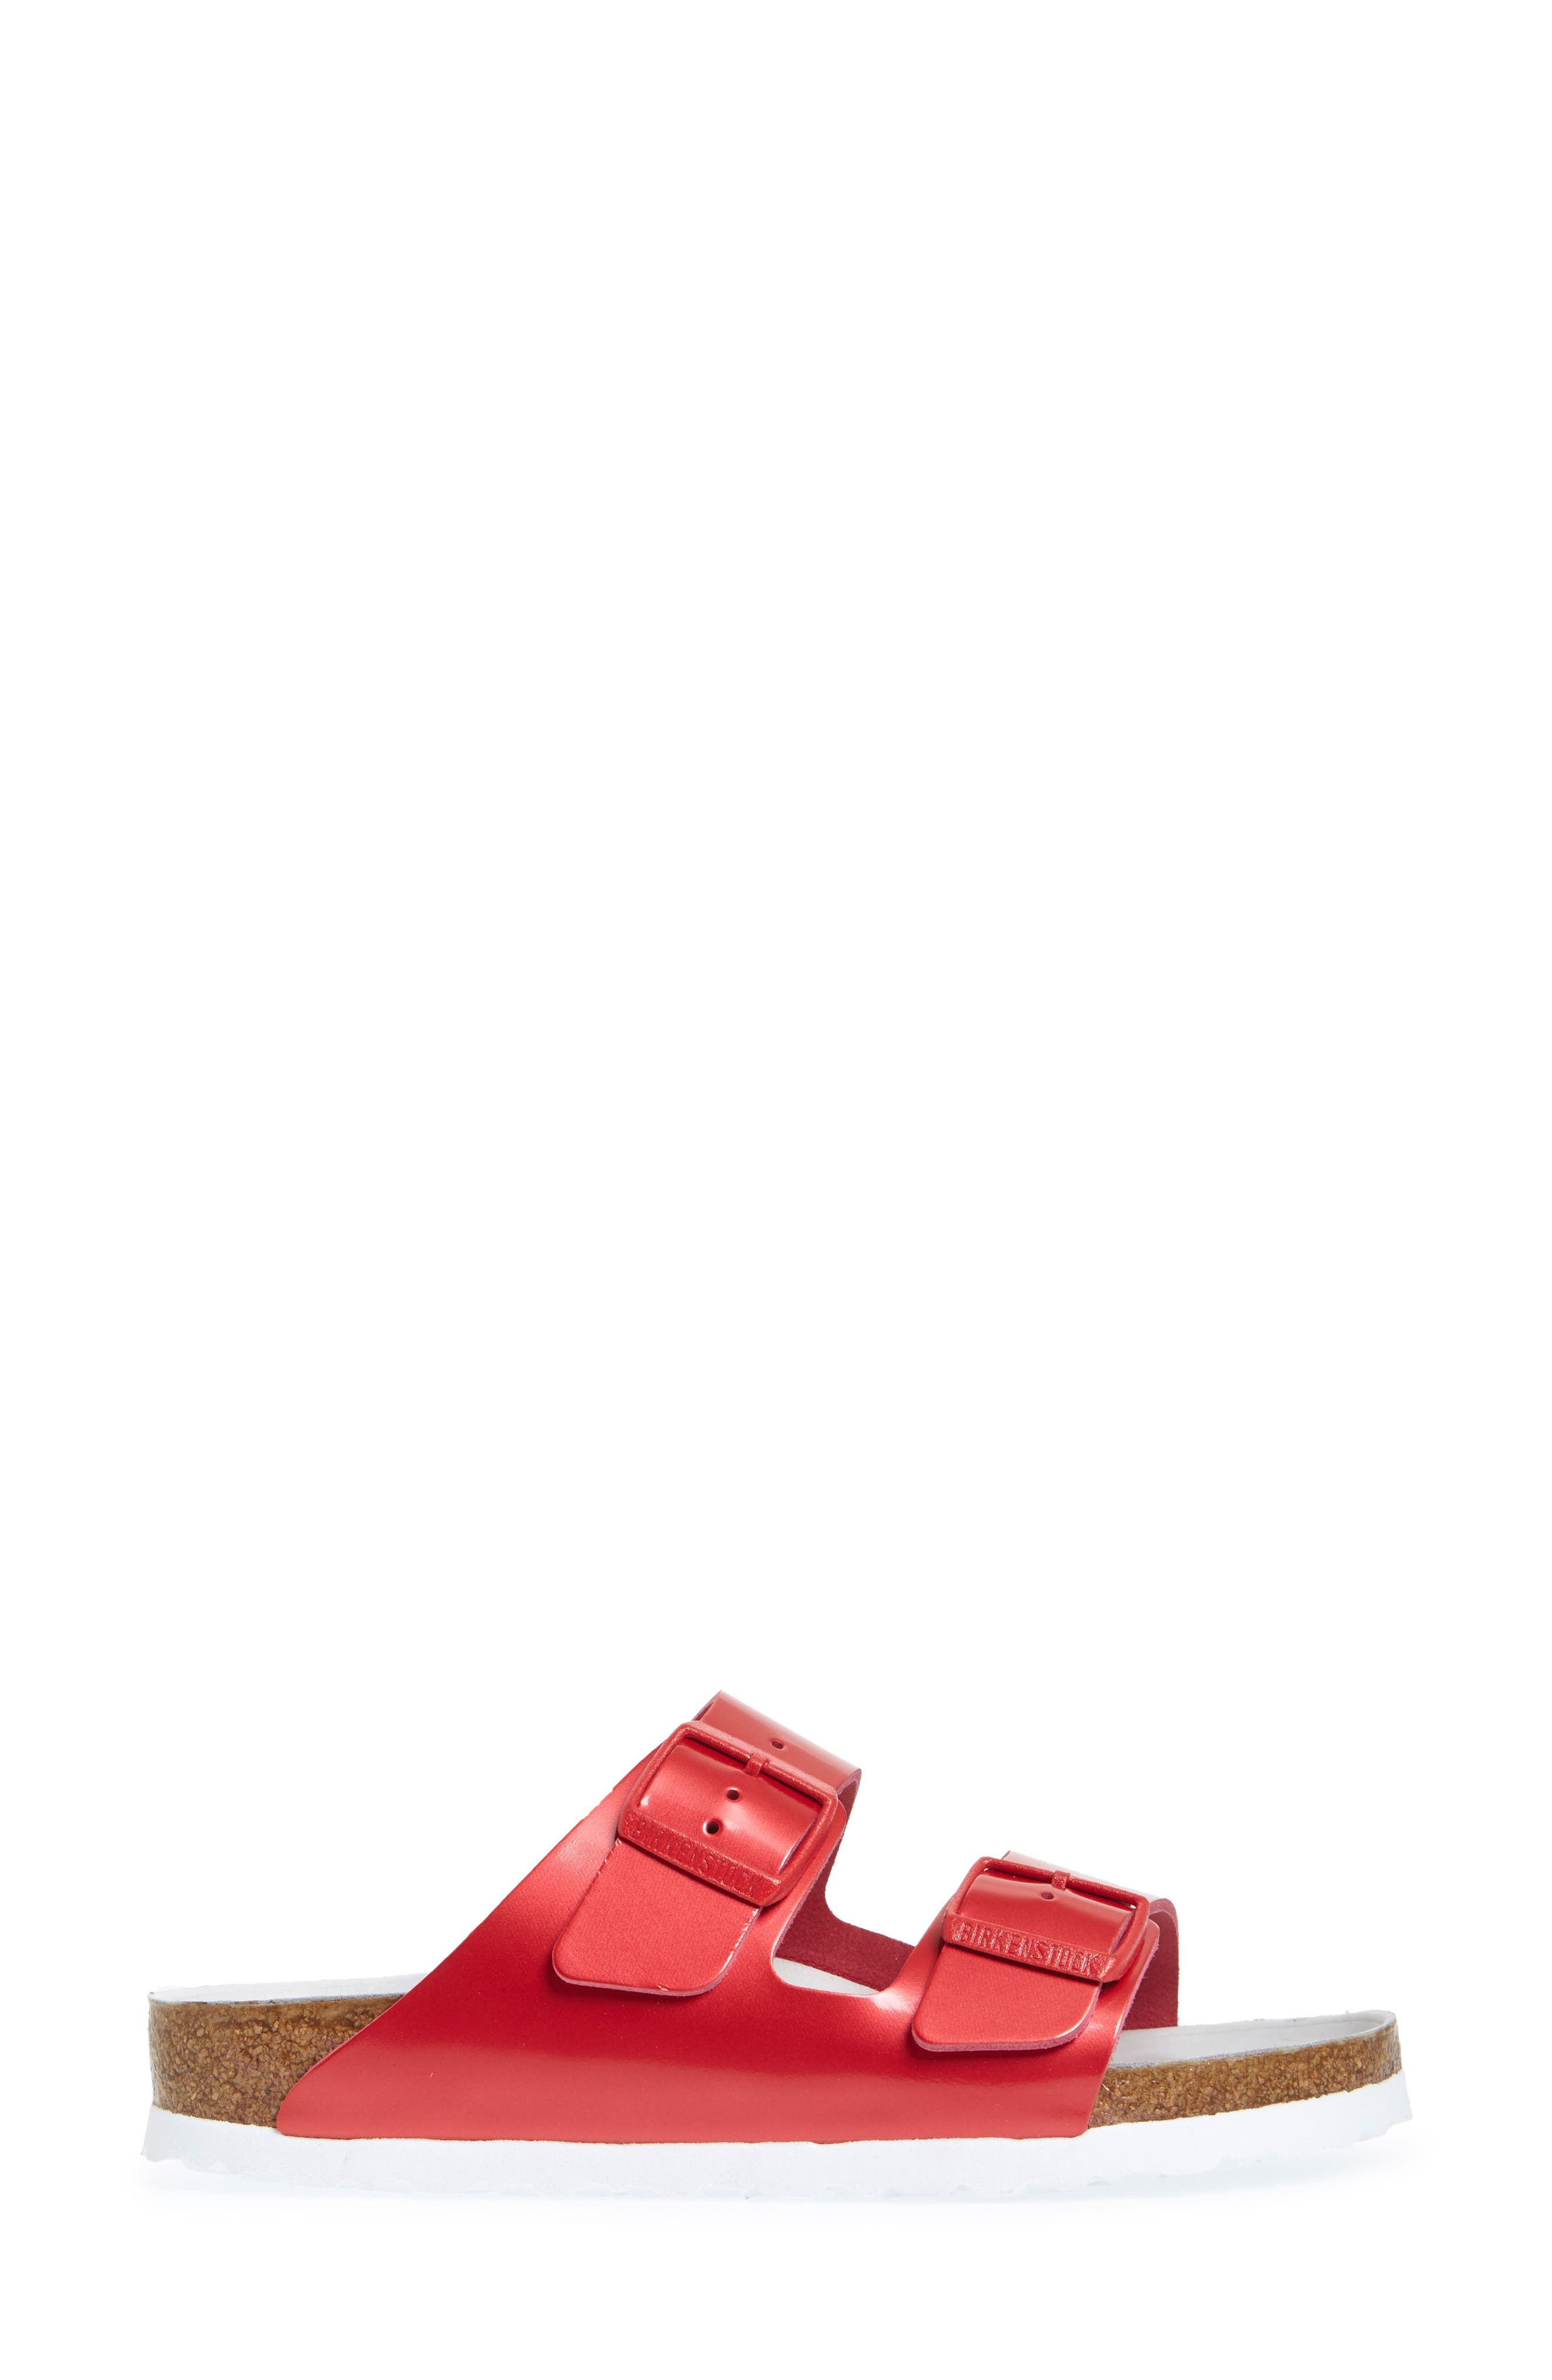 Arizona Hex Limited Edition - Shock Drop Slide Sandal,                             Alternate thumbnail 3, color,                             Red Spectacular Leather